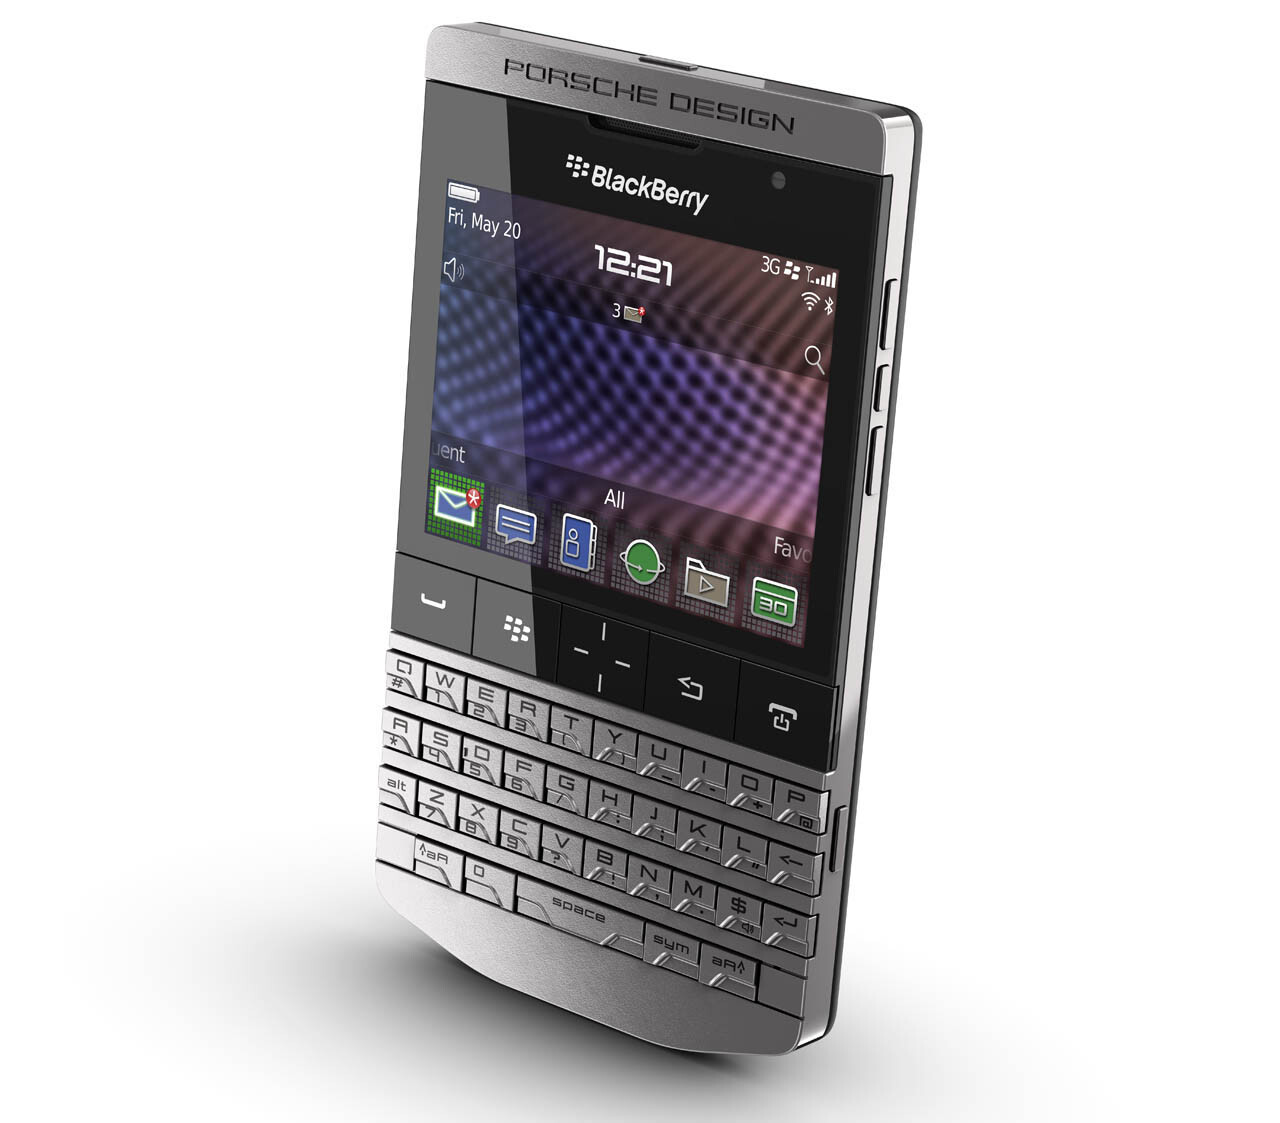 RIM BlackBerry P'9981 Porsche Design